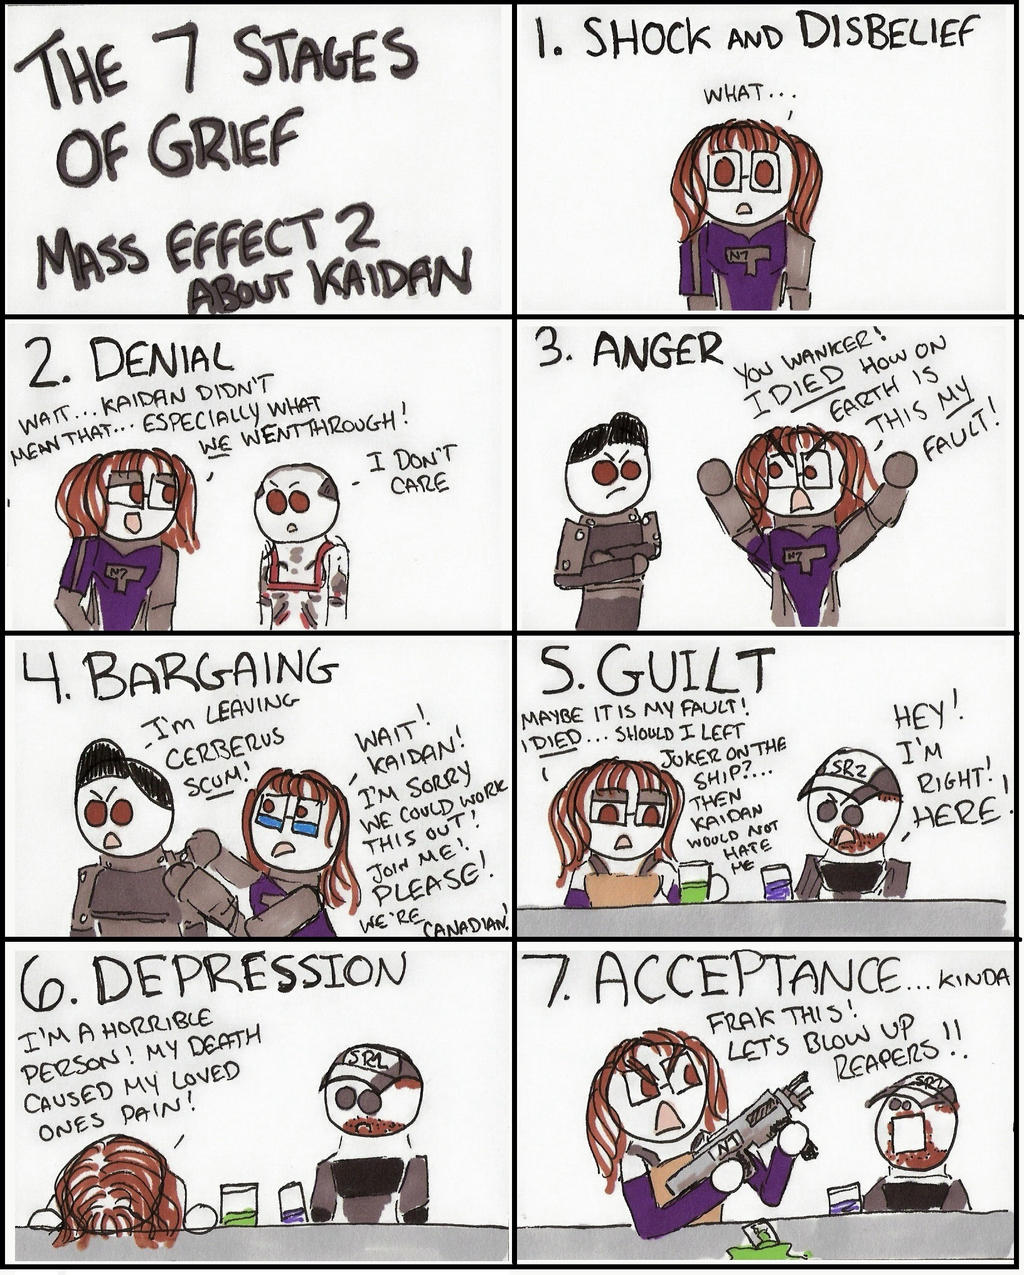 Mass Effect 2: The 7 Stages Of Grief About Kaidan By